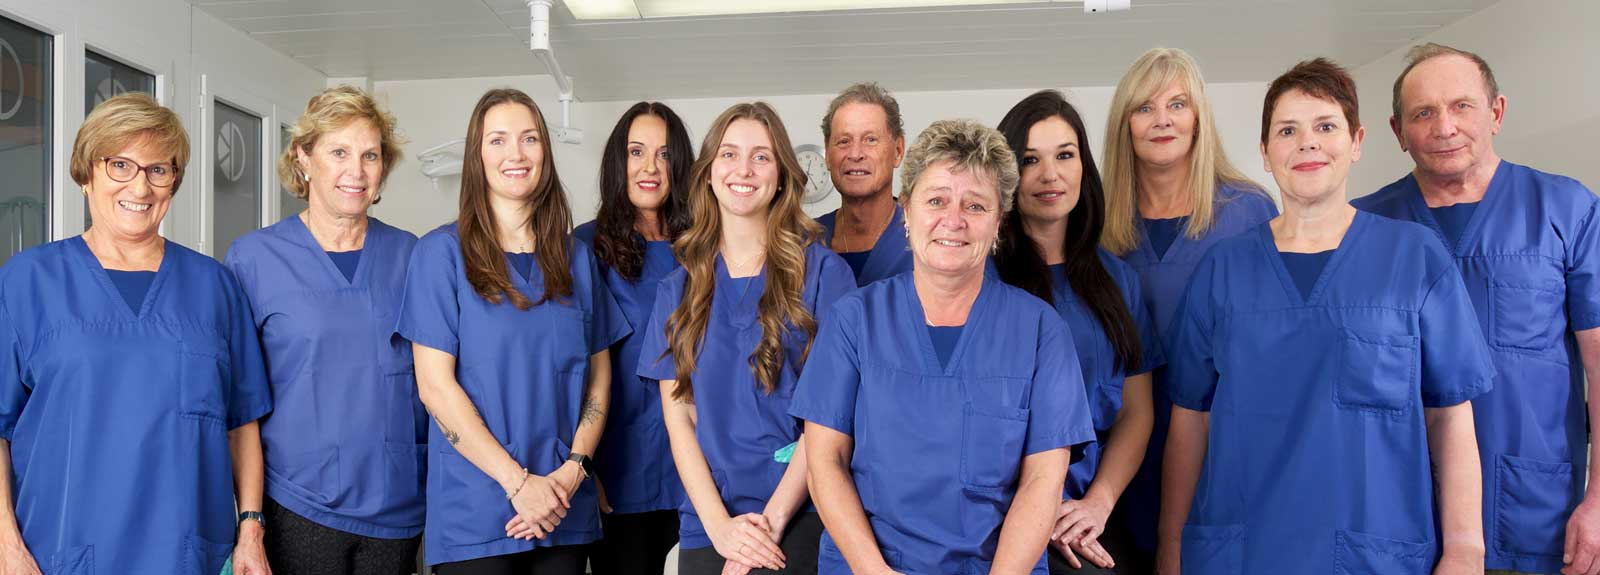 Staff of the Biel Aesthetic Surgery Clinic